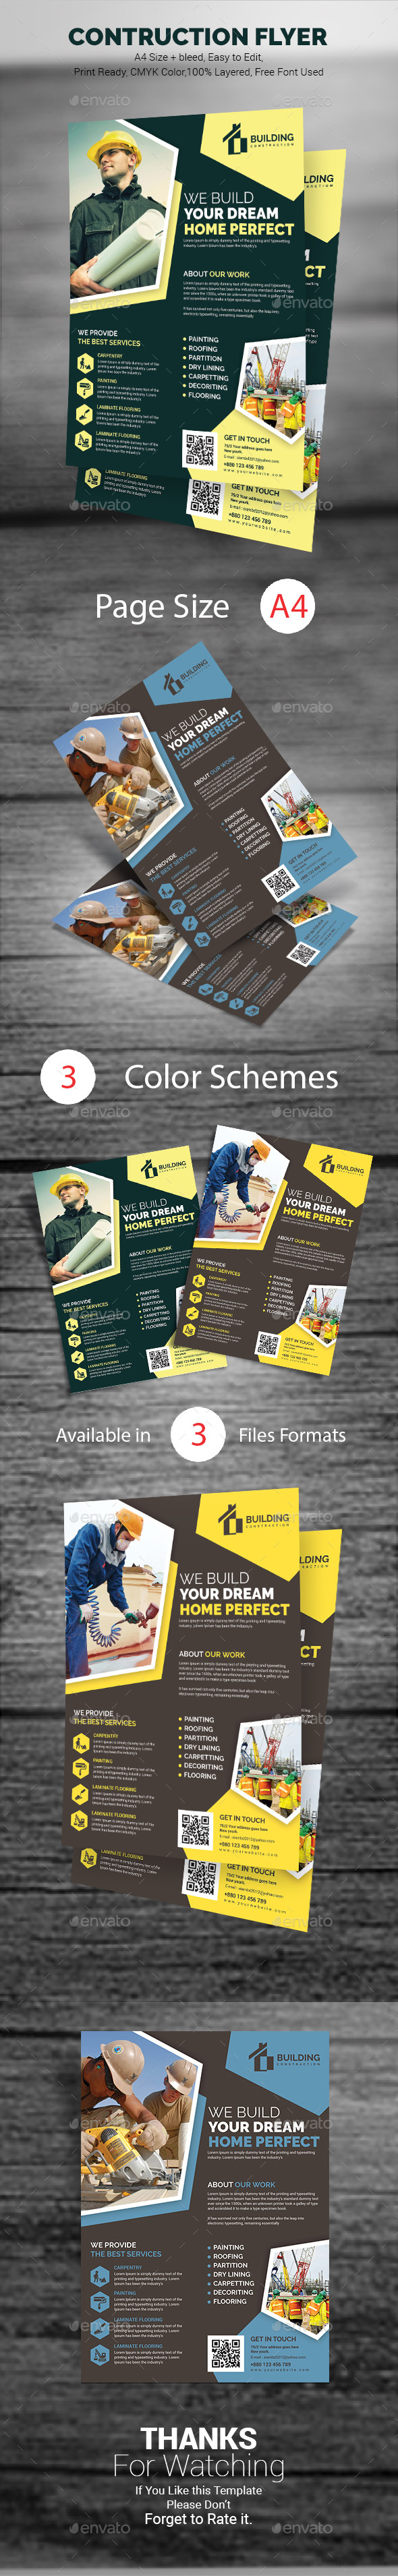 Construction Flyer - Corporate Flyers